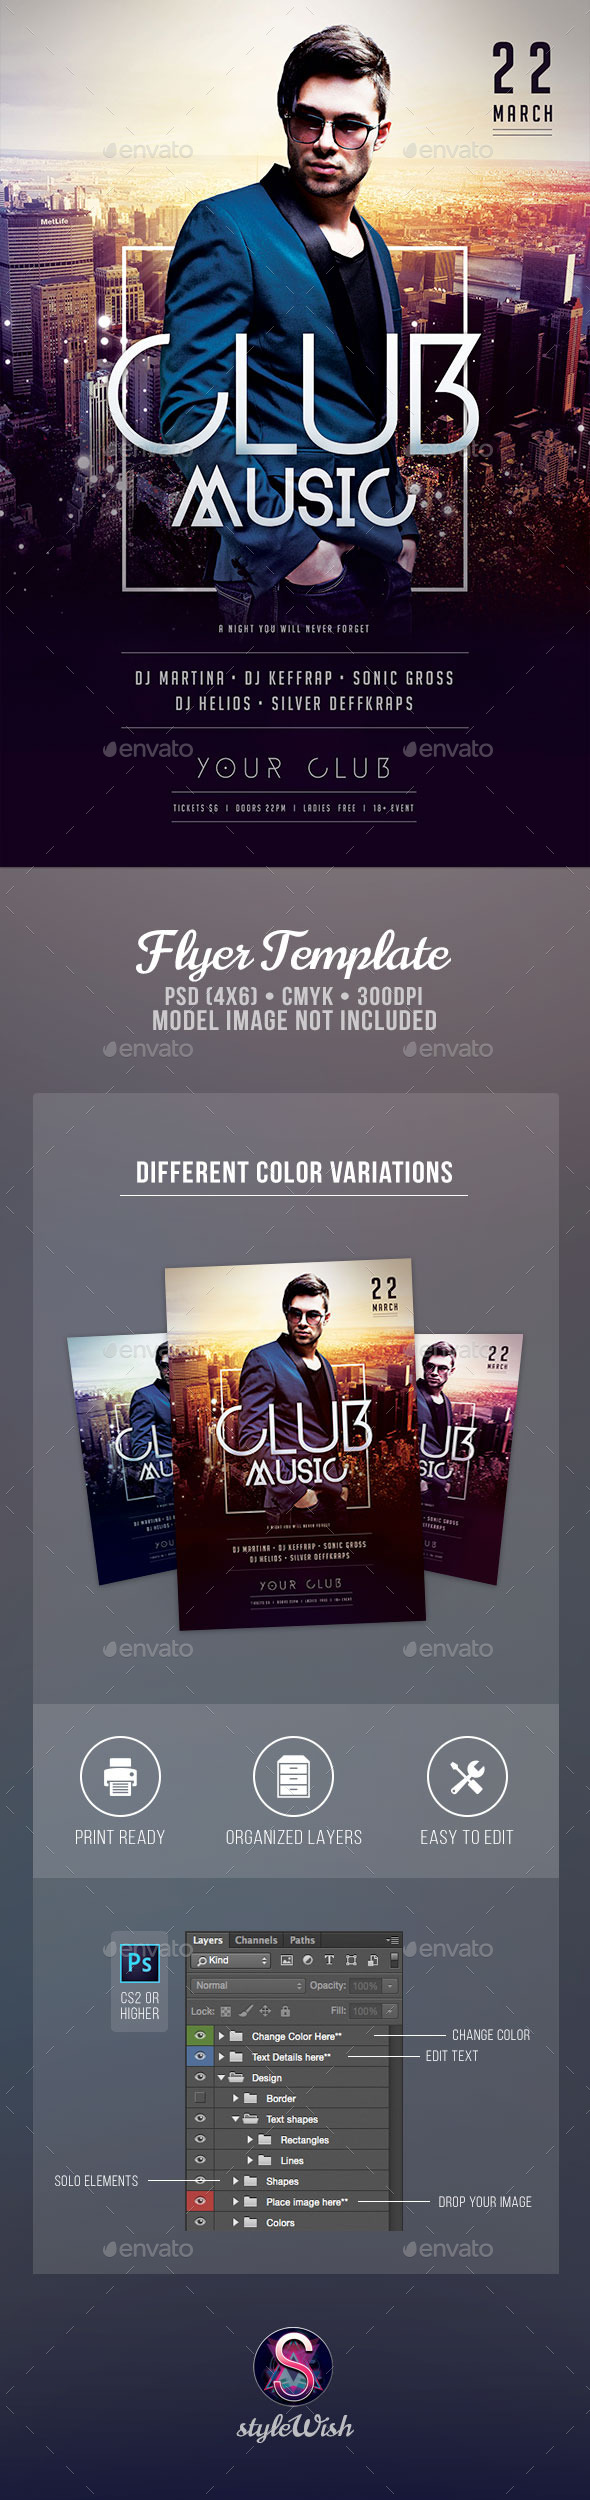 Club Music Flyer - Clubs & Parties Events